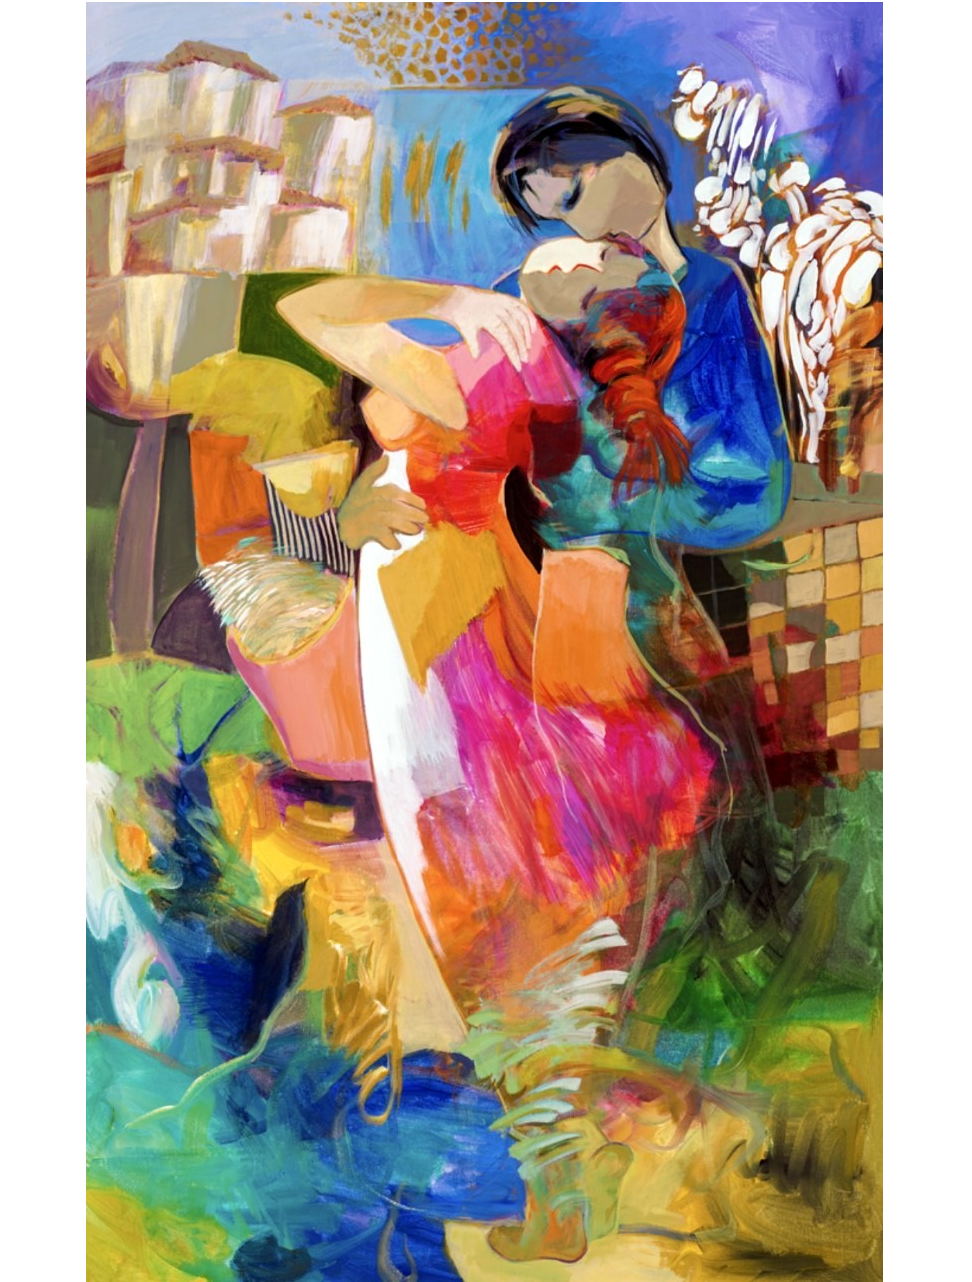 Hessam_Iranian artist_American painter_color block_figurative_abstract art_colorful_man and woman paintings_fine art_oil pain